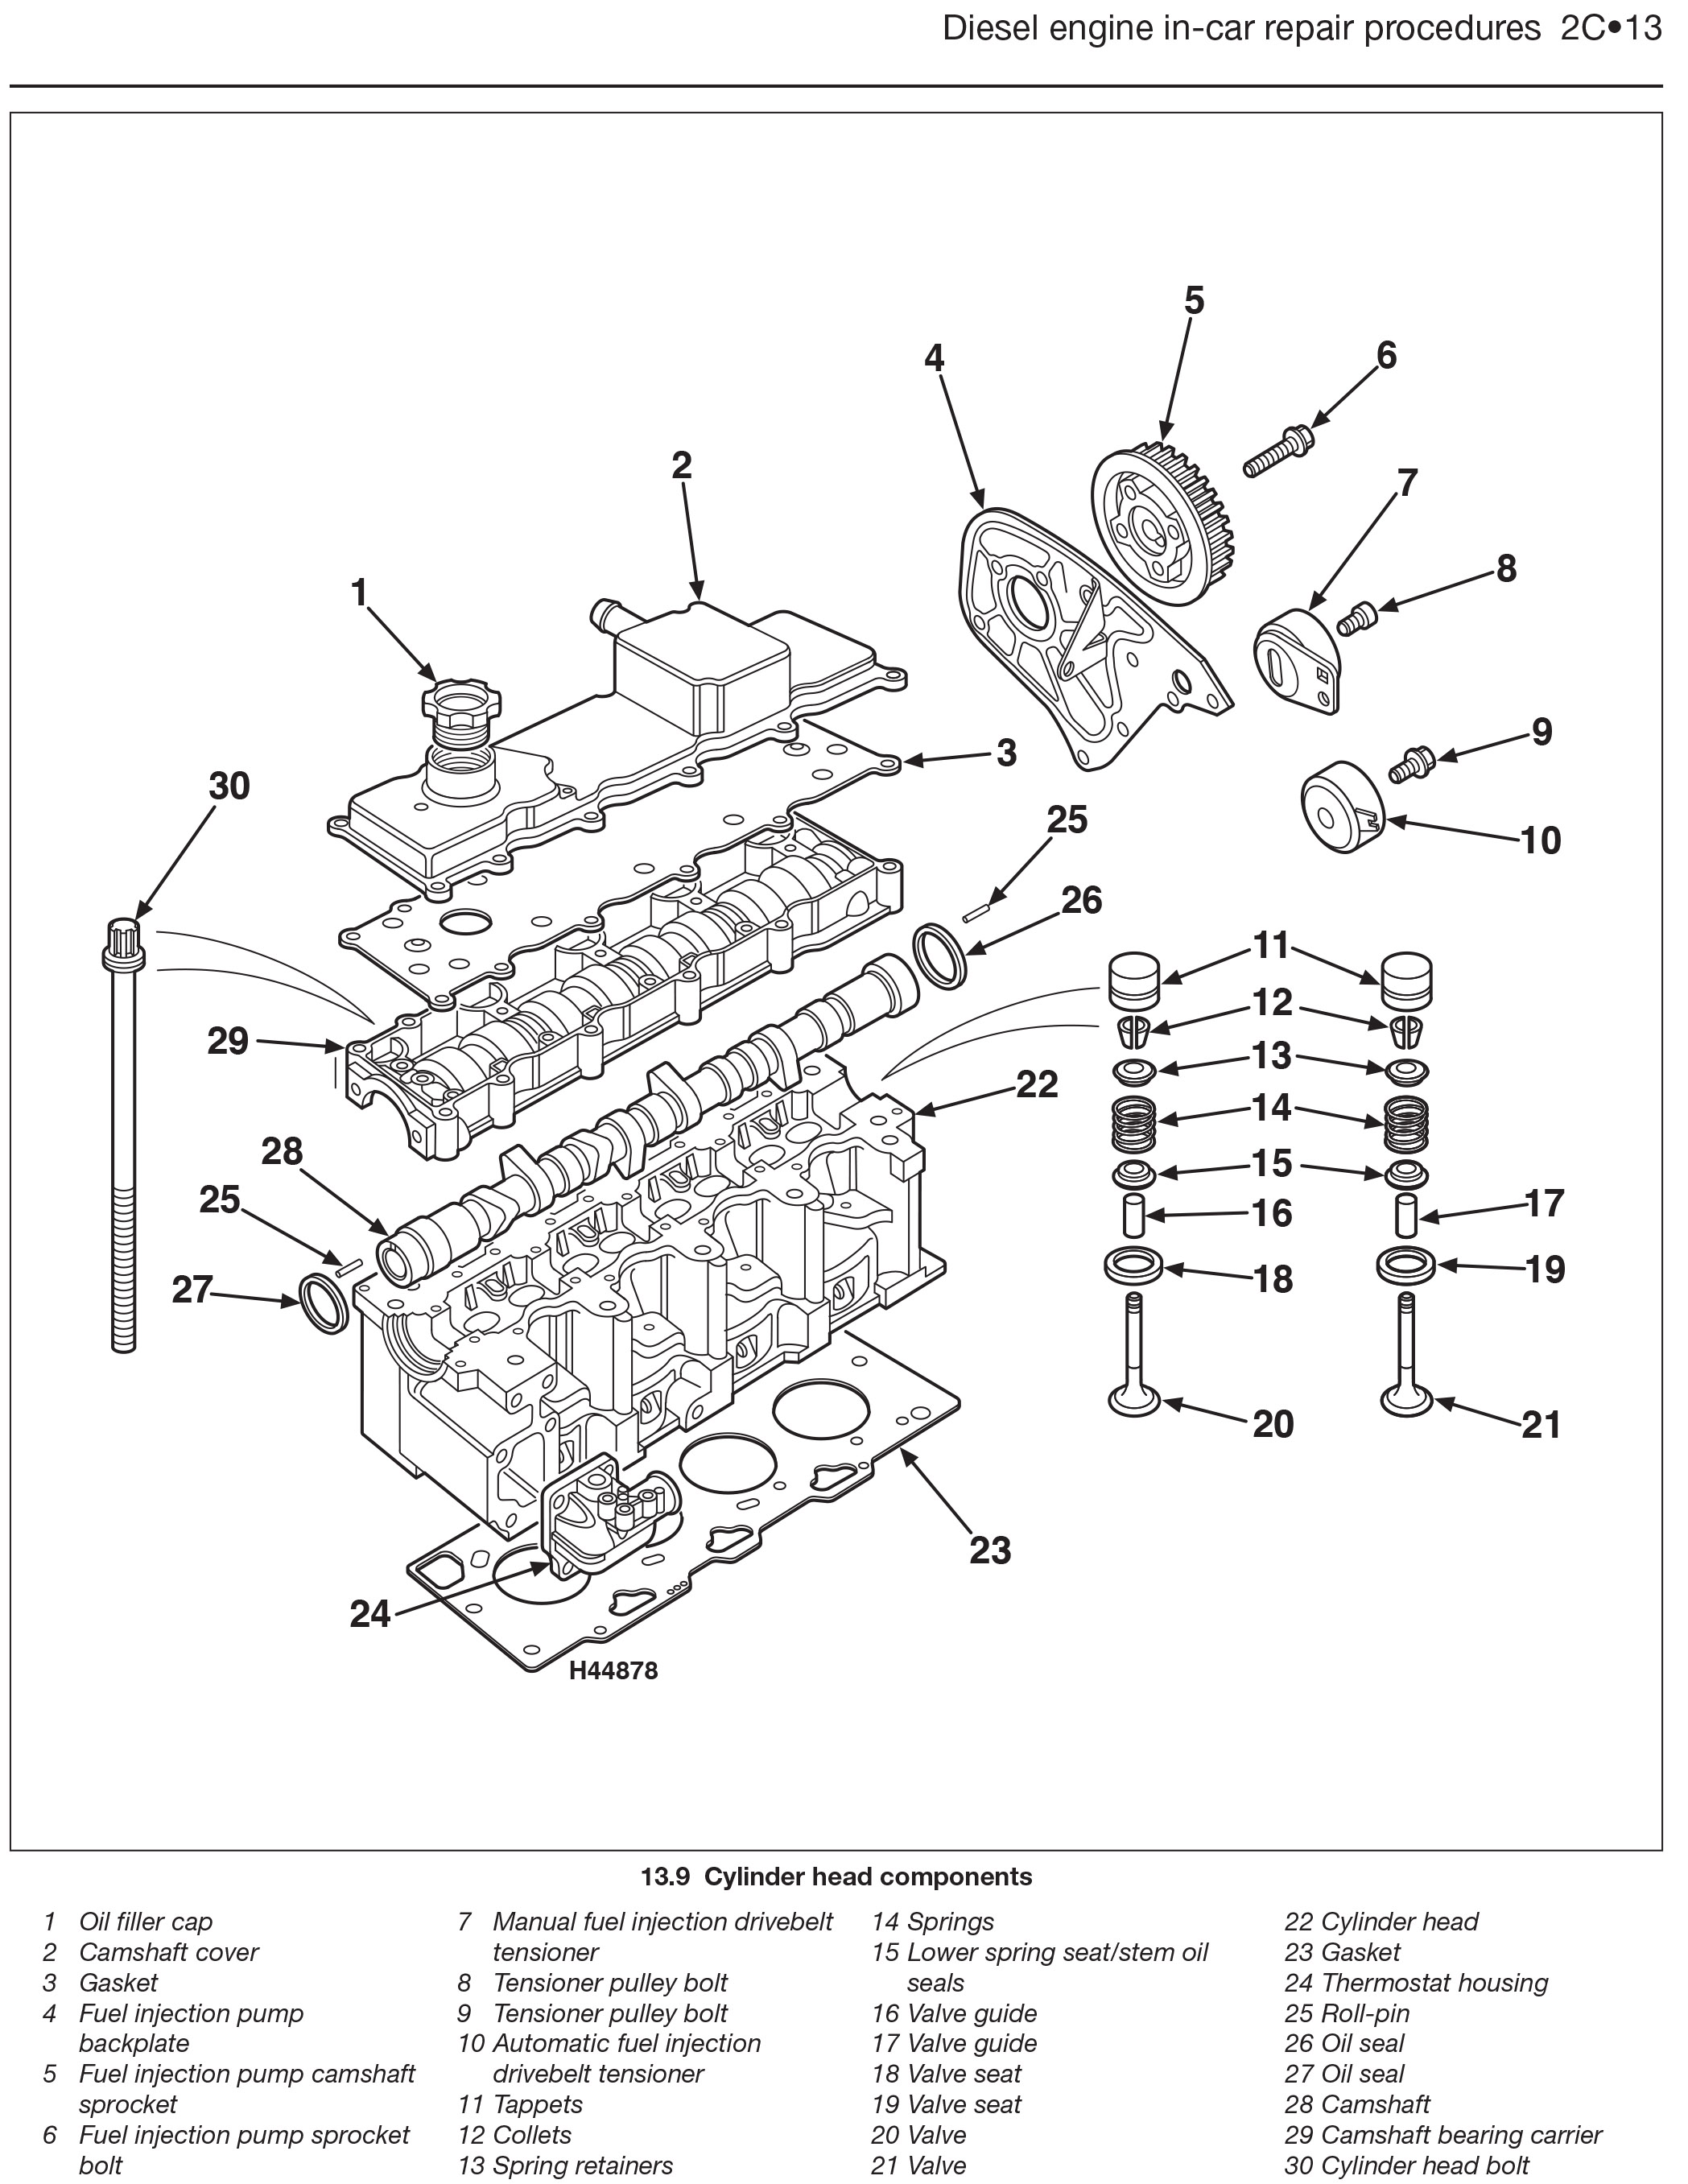 [SCHEMATICS_44OR]  Wiring Diagram For Rover 45 Basic Race Car Chasis Wiring Schematic - fisher- wire.pisang.astrea-construction.fr | Rover 45 Audio Wiring Diagram |  | Begeboy Wiring Diagram Source - astrea-construction.fr